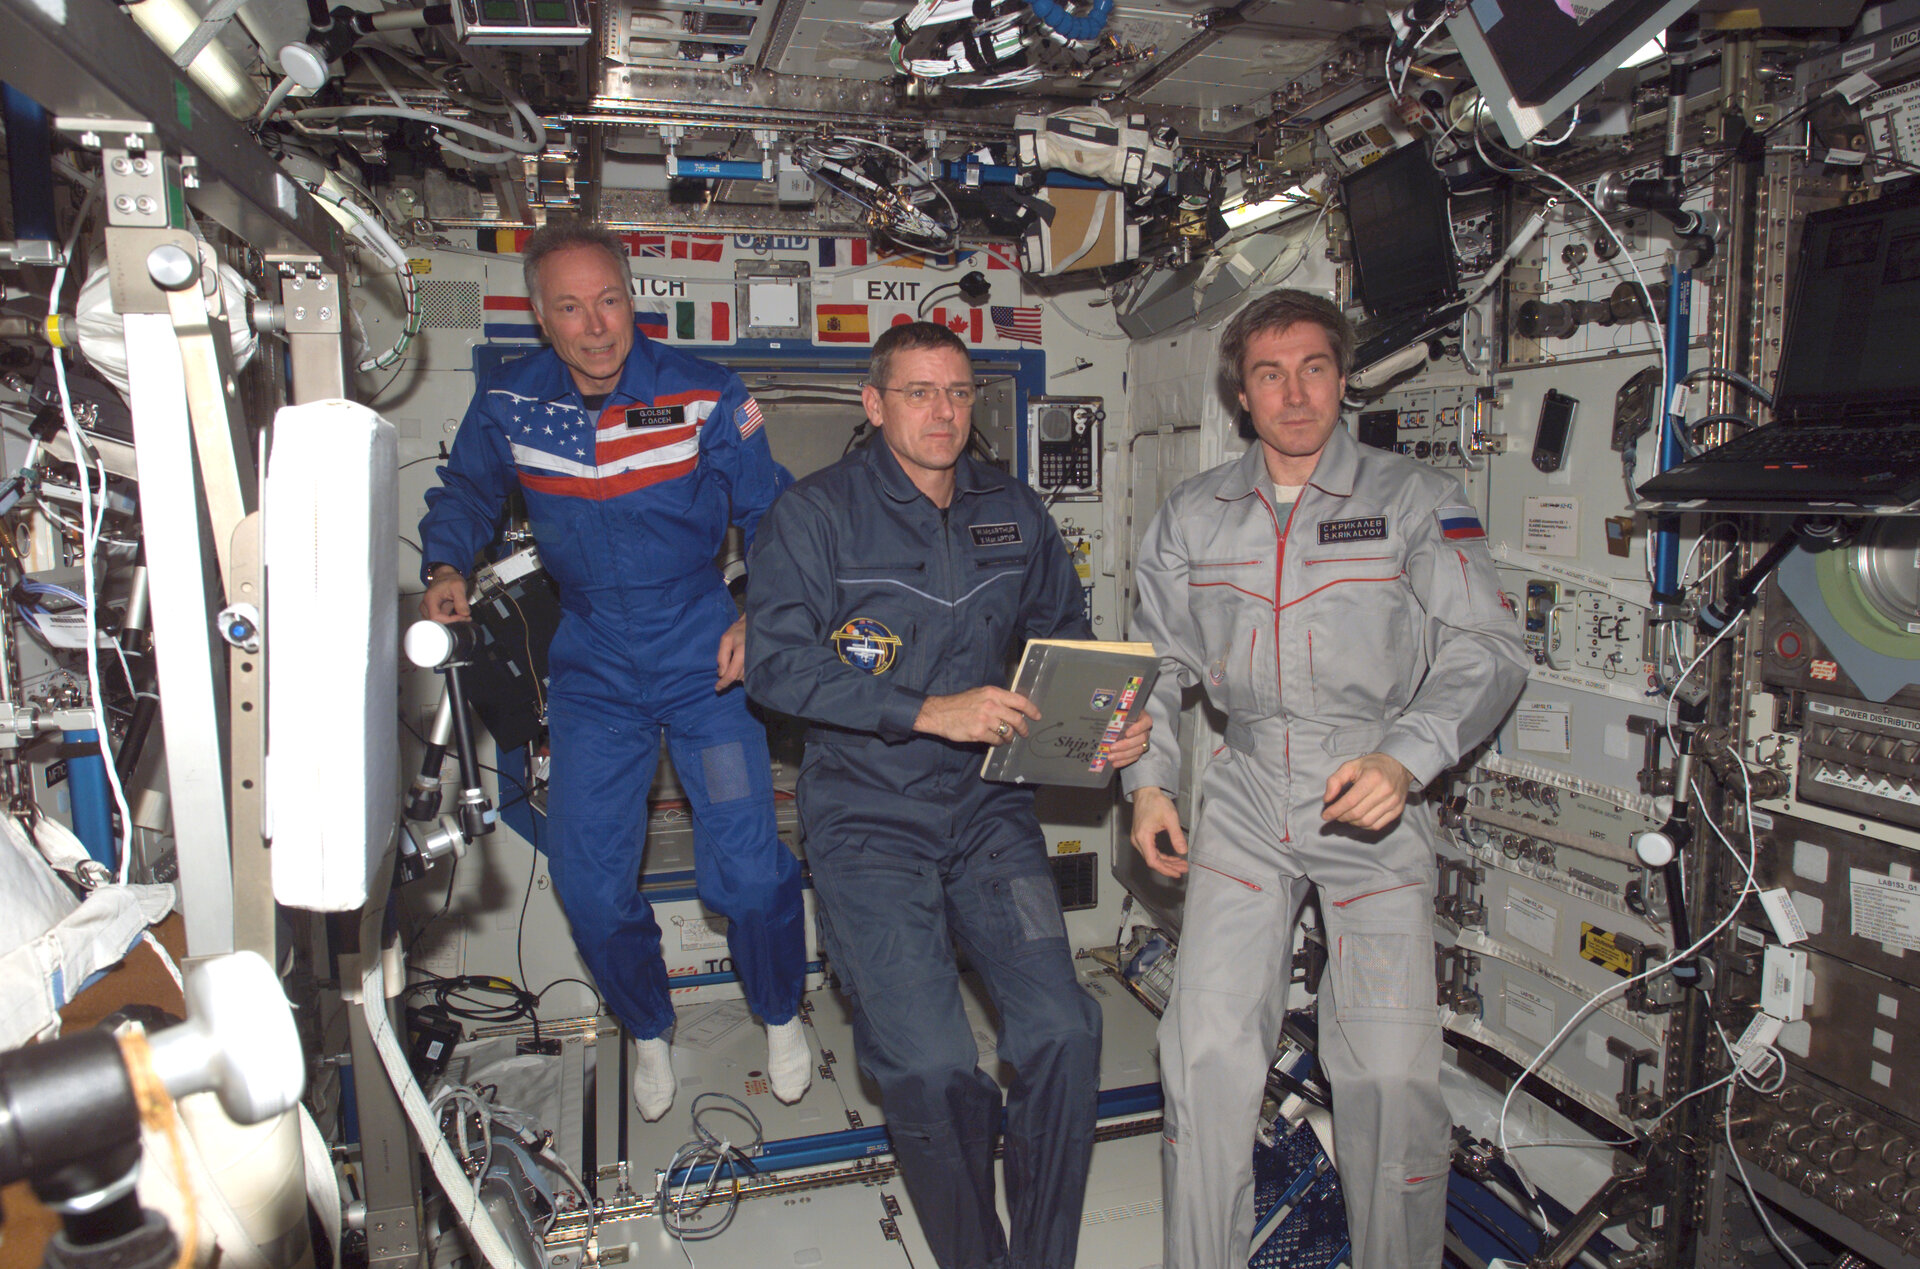 Dr Olsen spent 10 days on board the ISS in October 2005